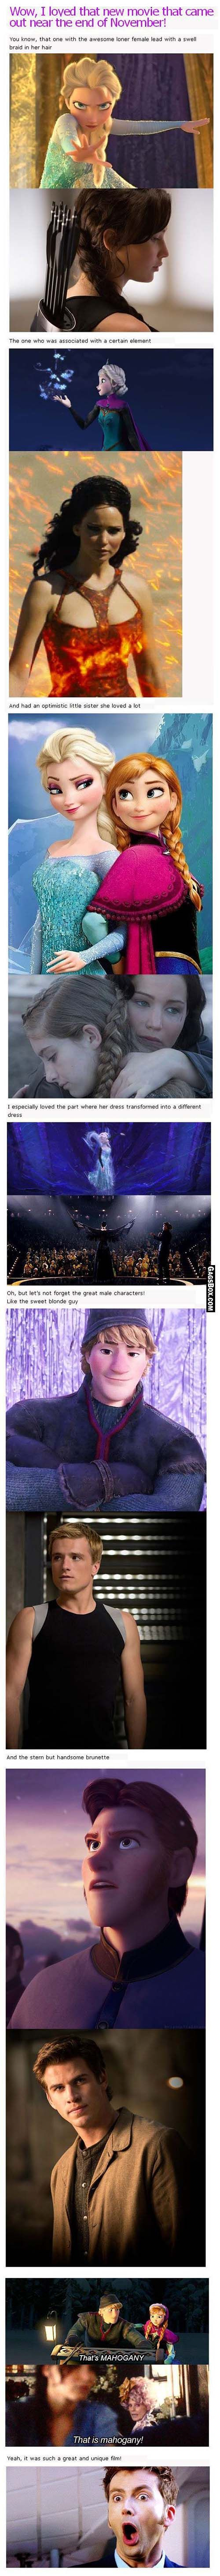 Disney Frozen Movie Vs Hunger Games - two great movies for sisters!